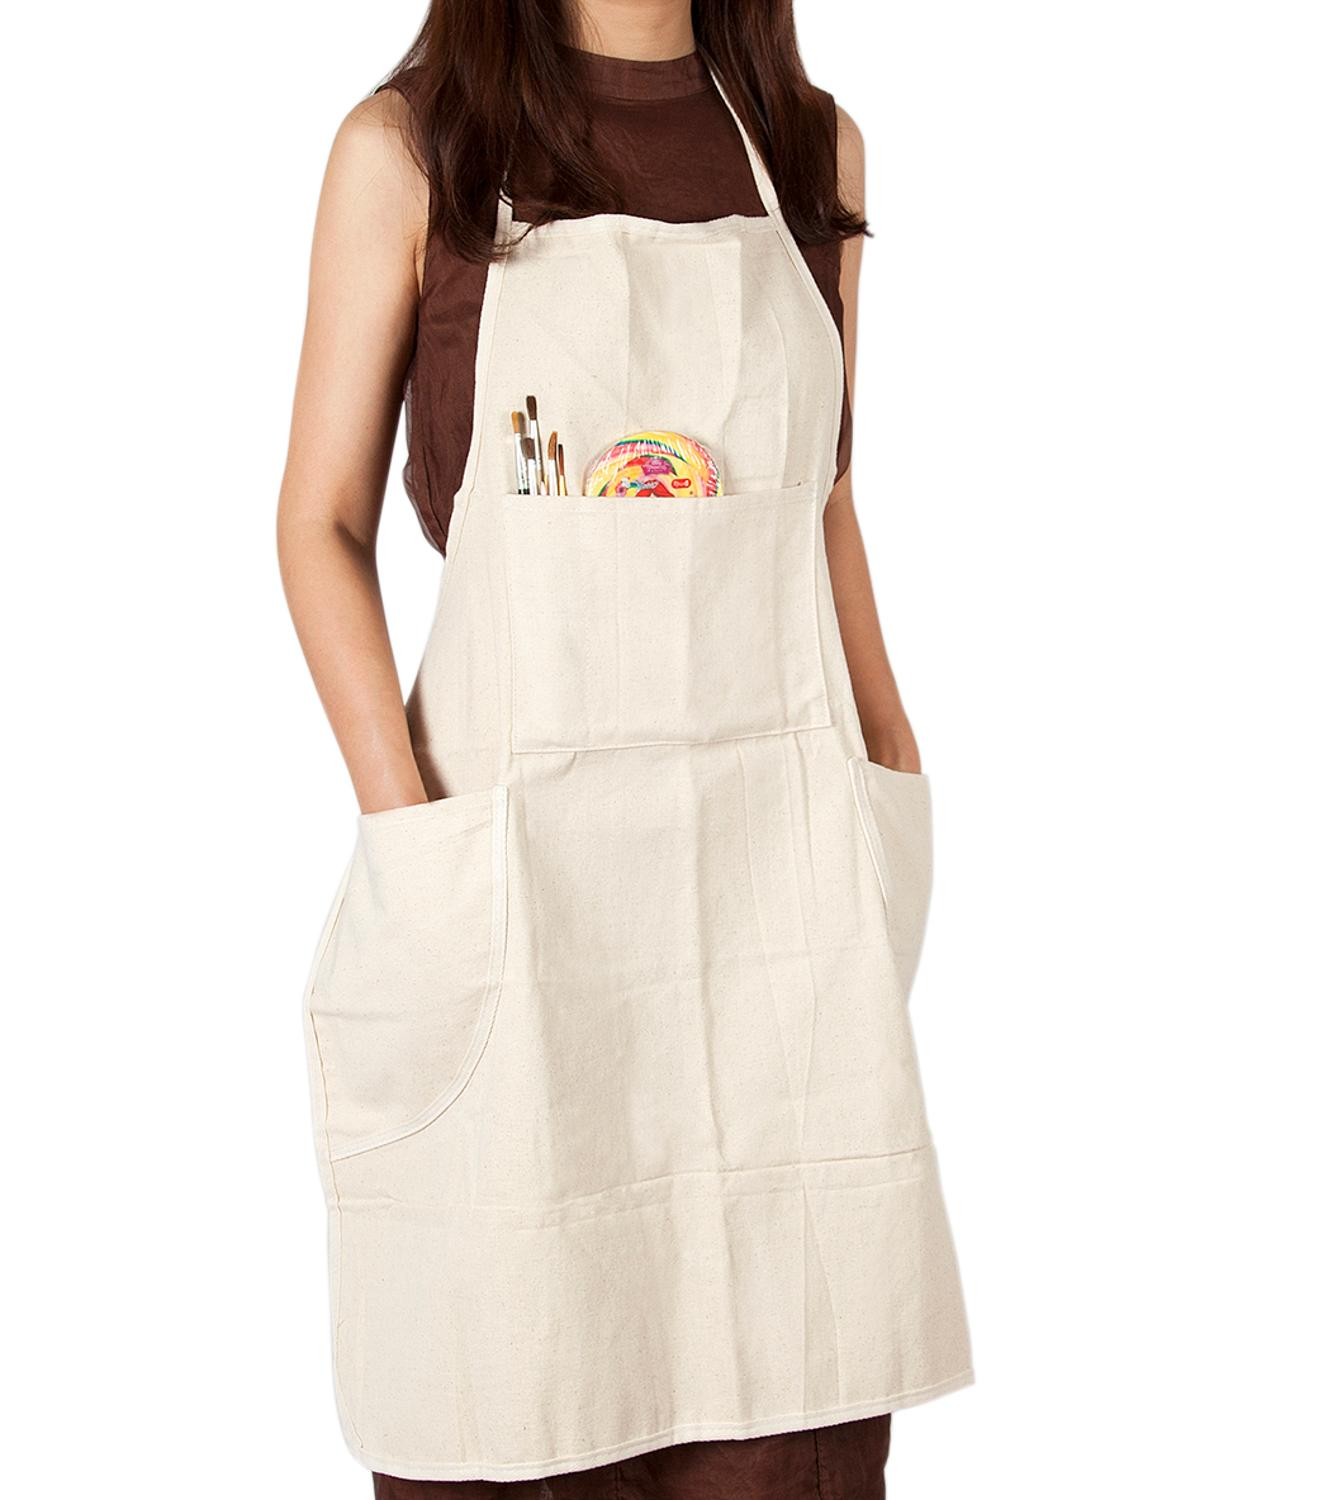 CONDA Apron for Painting with 4 Pockets Waterproof Professional Bib Cotton Canvas for Women Men Adults Natural 31 inchCONDA Apron for Painting with 4 Pockets Waterproof Professional Bib Cotton Canvas for Women Men Adults Natural 31 inch